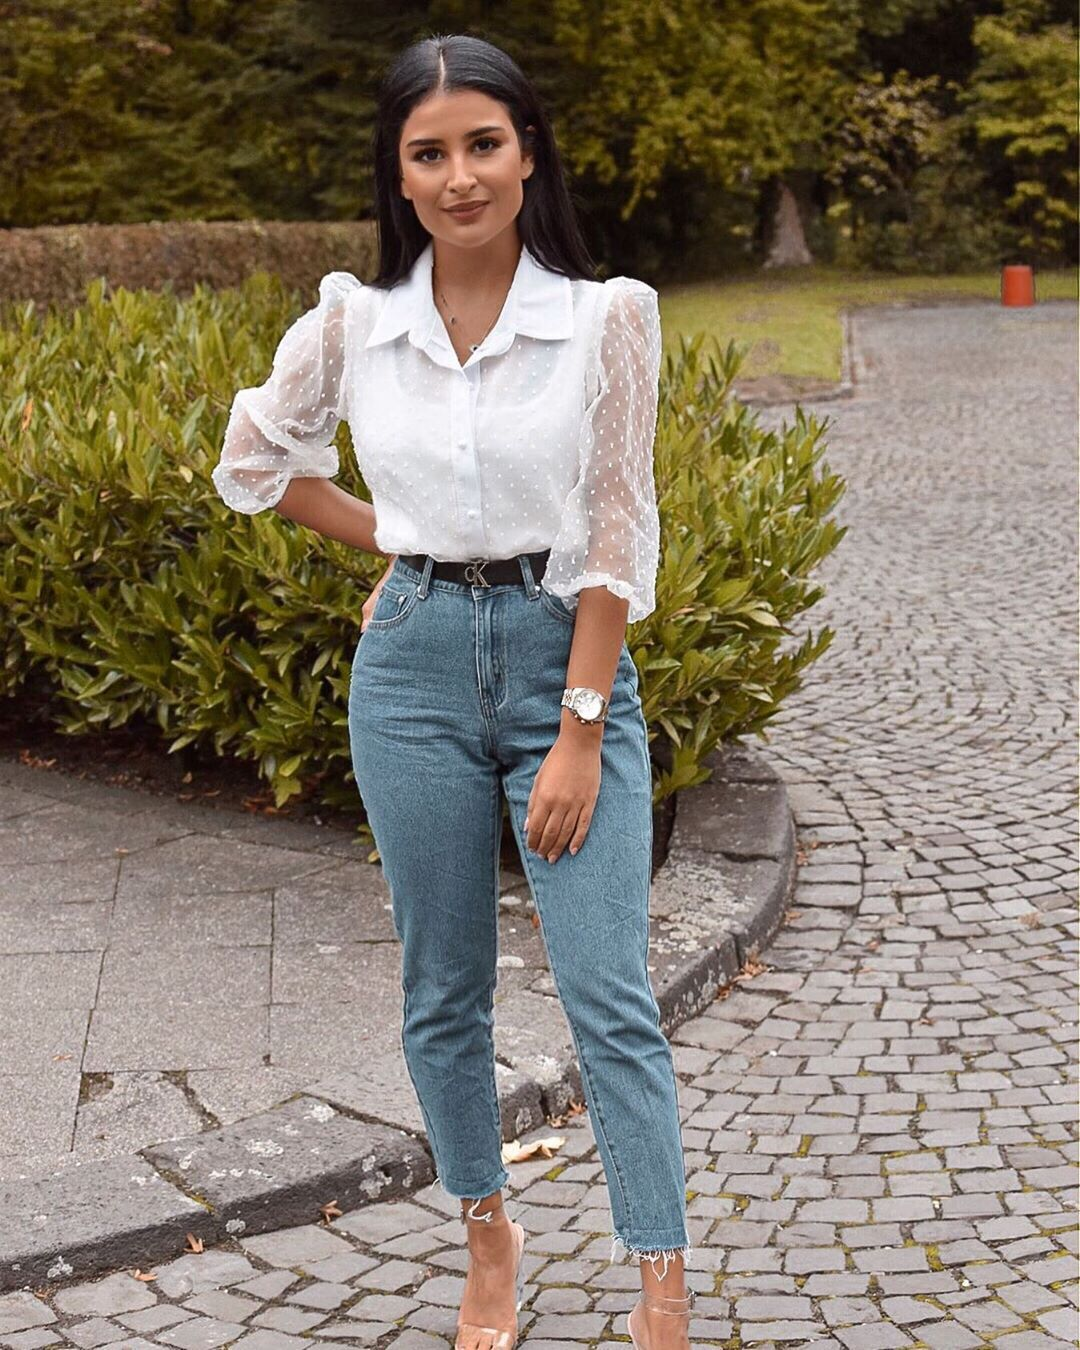 Pin by Sade on outfit in 2020 | Outfits, Fashion, Work outfit